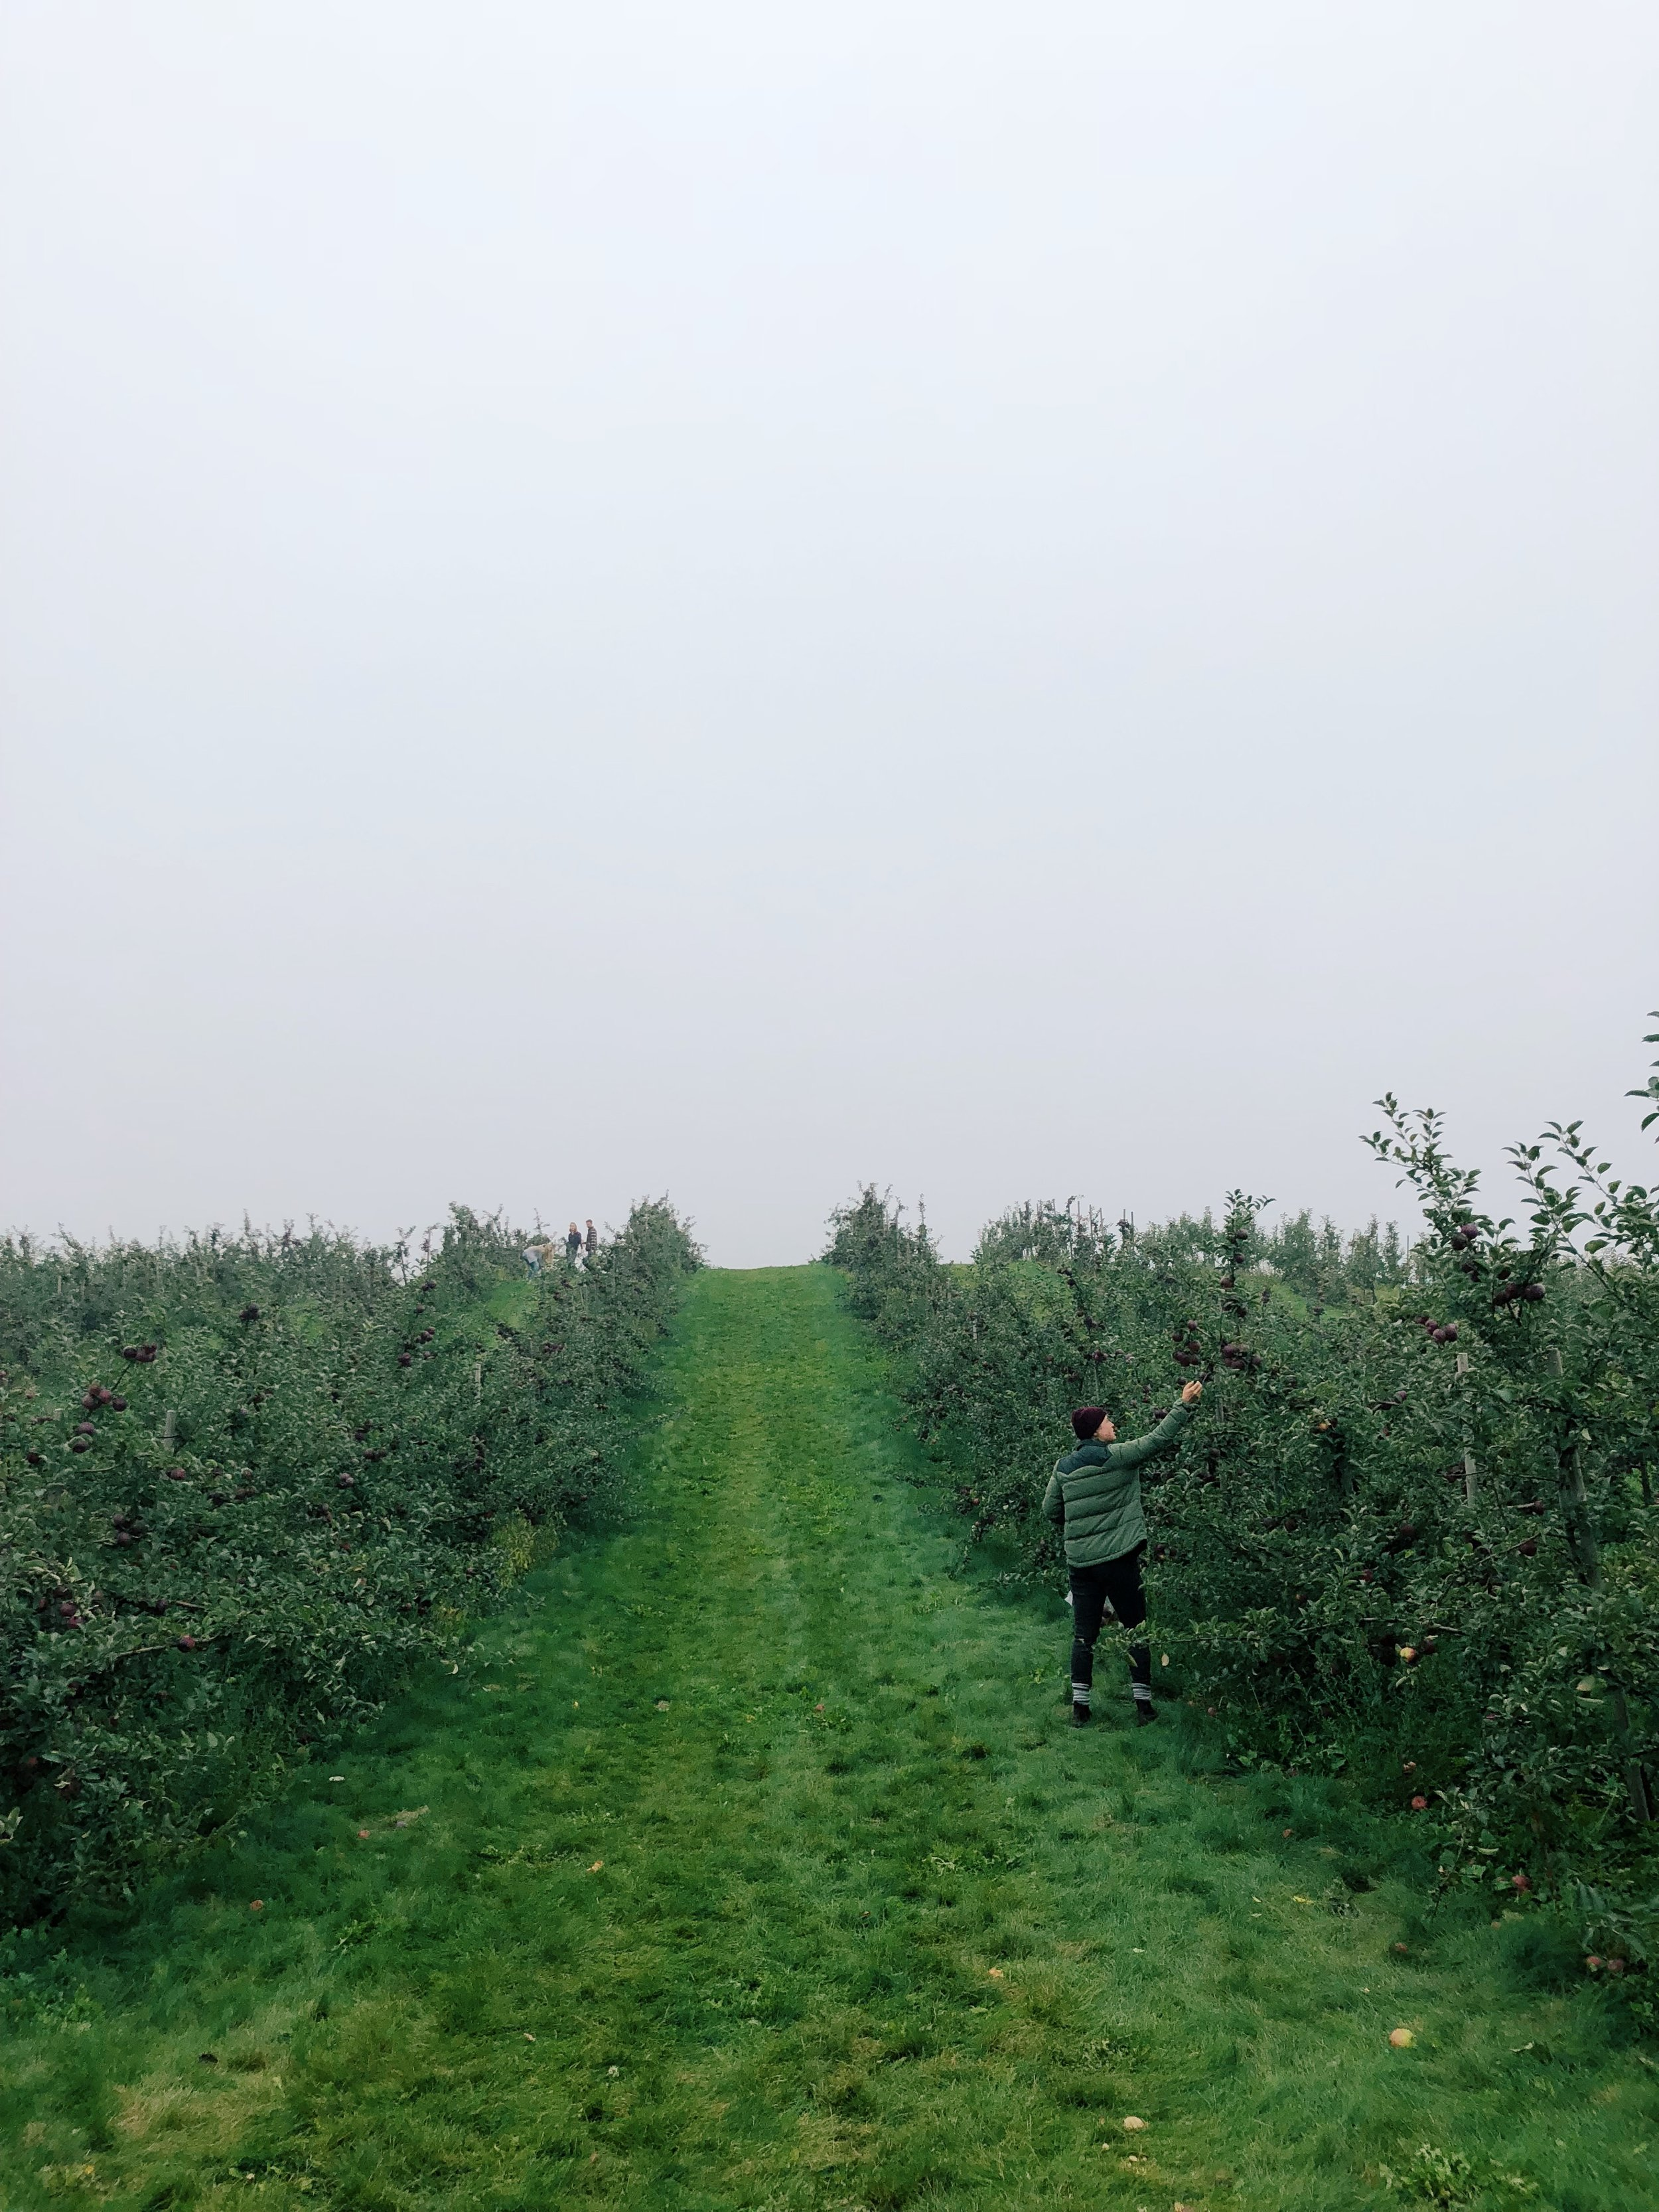 Picking apples October 8, 2018, in Ontario, Canada.